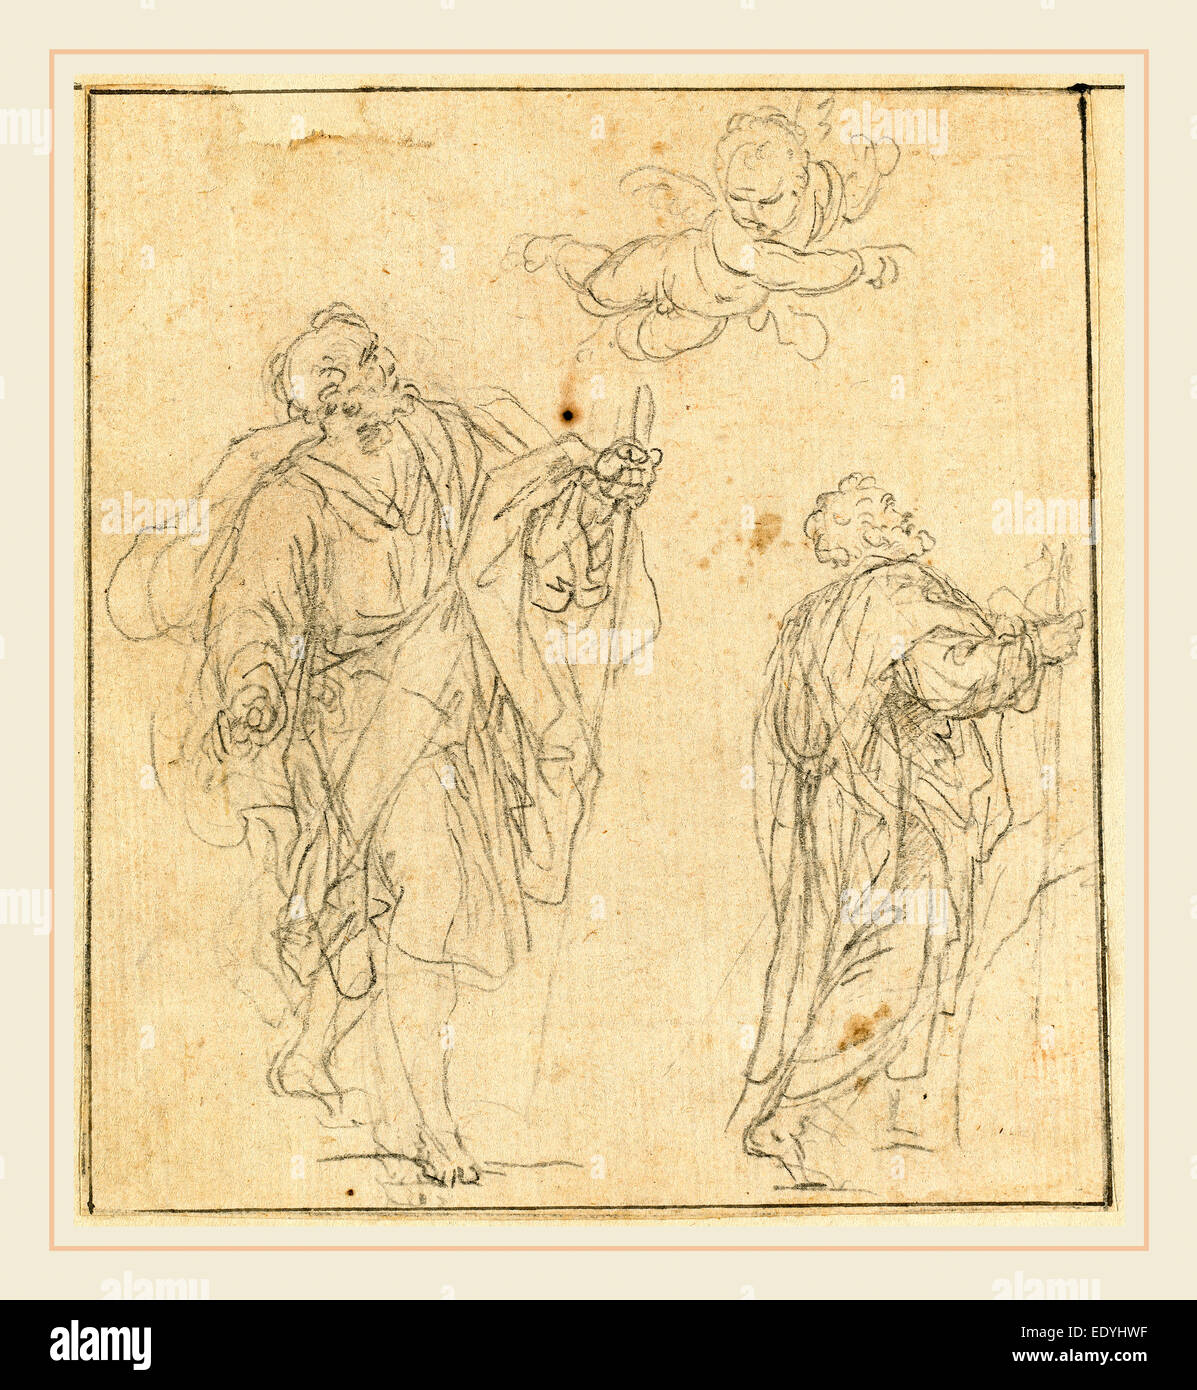 Agostino Masucci, Italian (1691-1758), Two Biblical Figures Guided by a Cherub, black chalk on laid paper - Stock Image